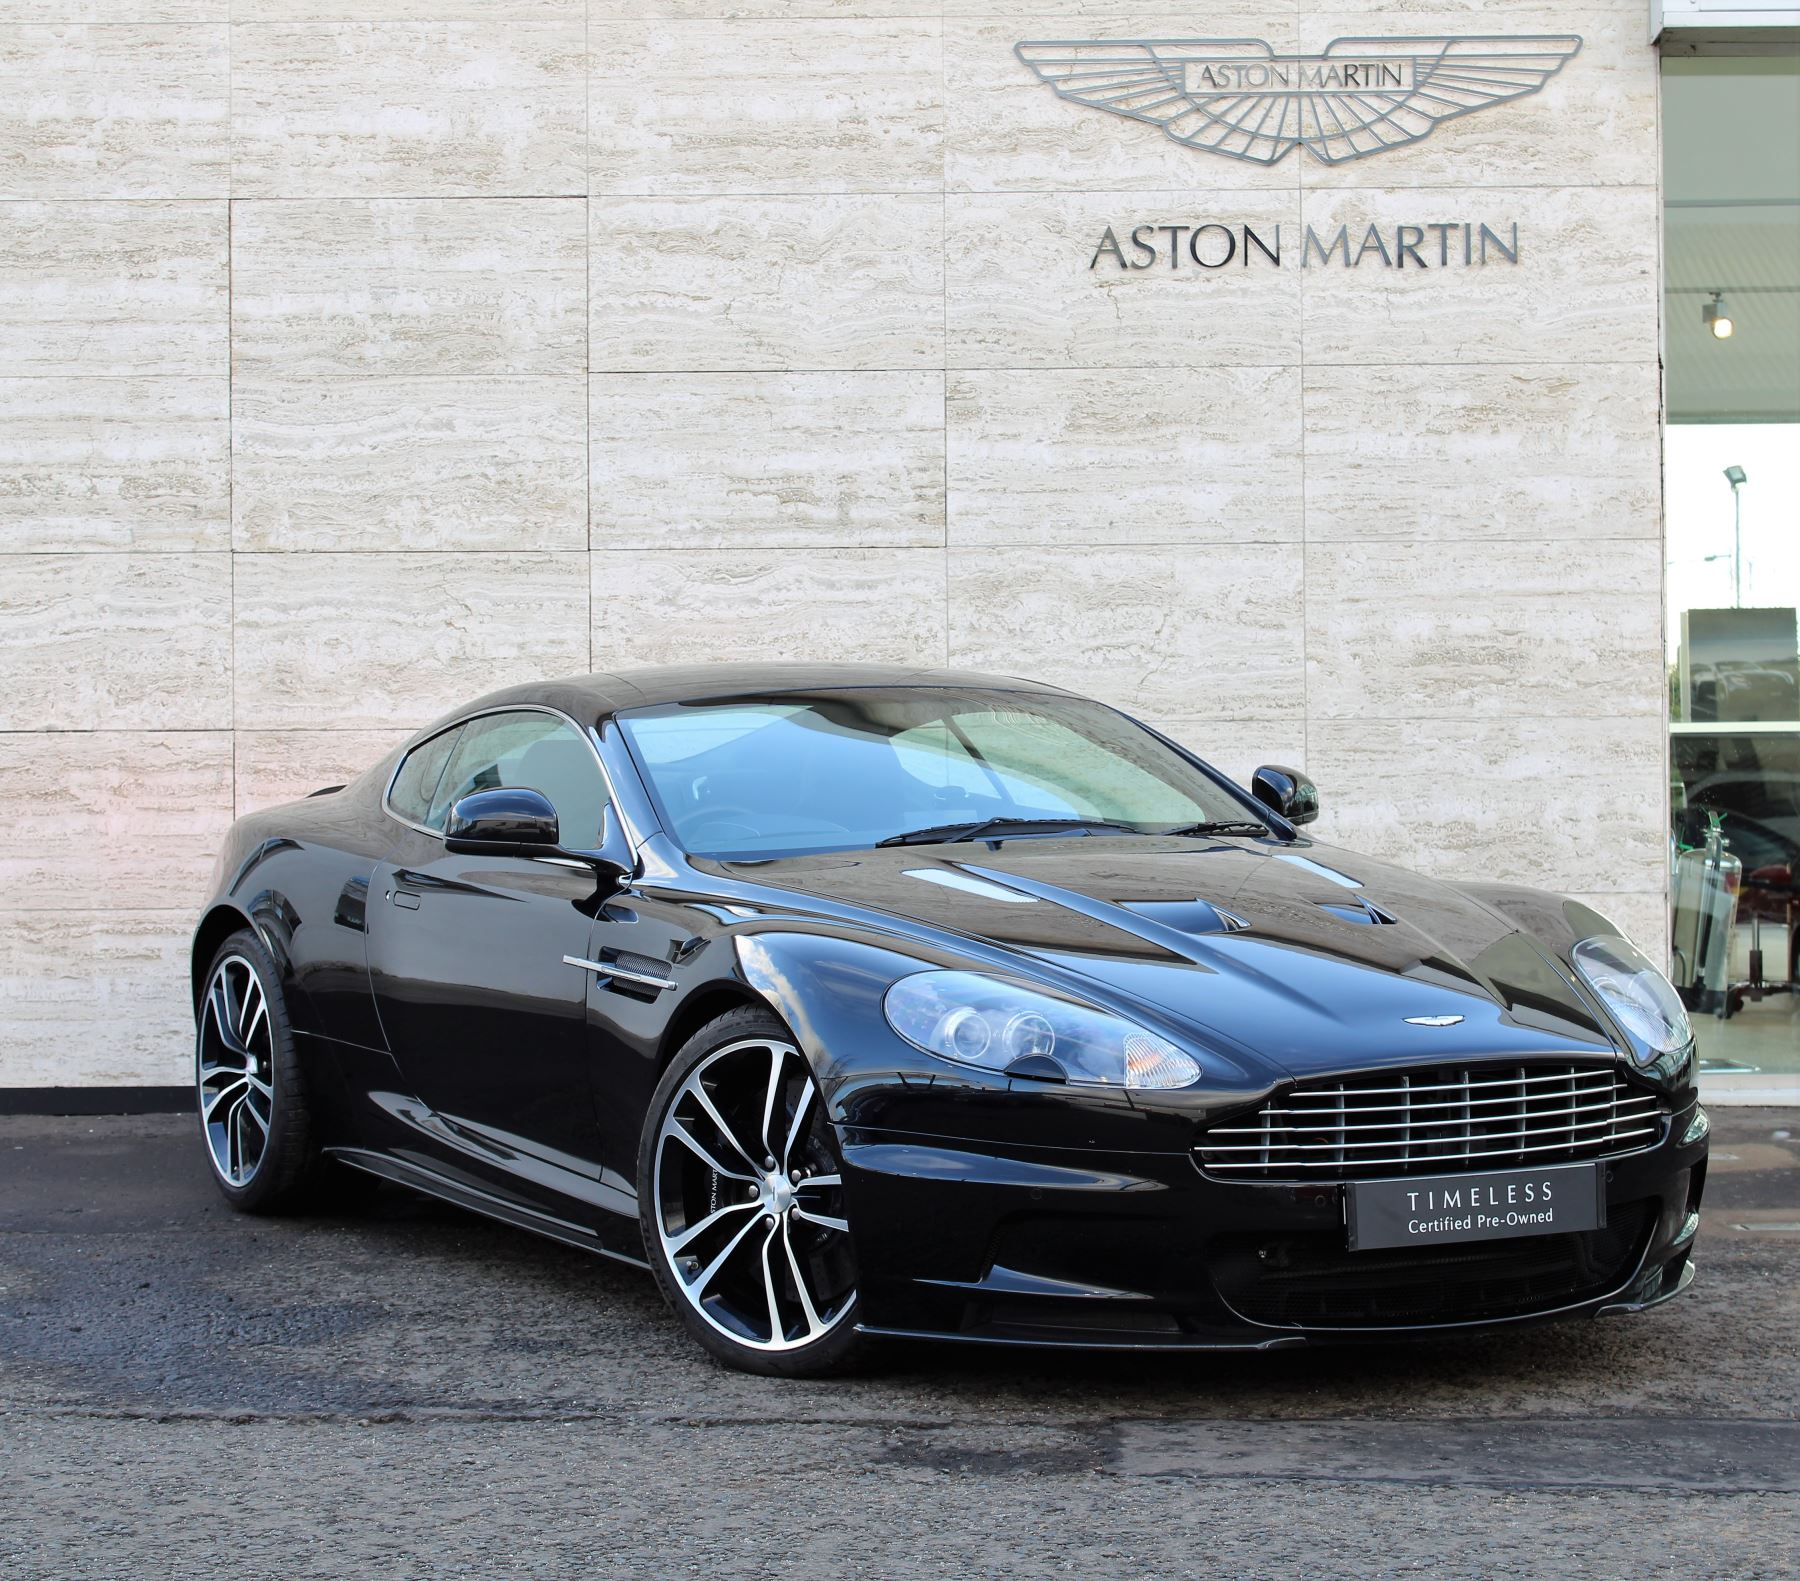 Aston Martin DBS V12 CARBON EDITION 2dr Touchtronic 5.9 Automatic Coupe (2011)